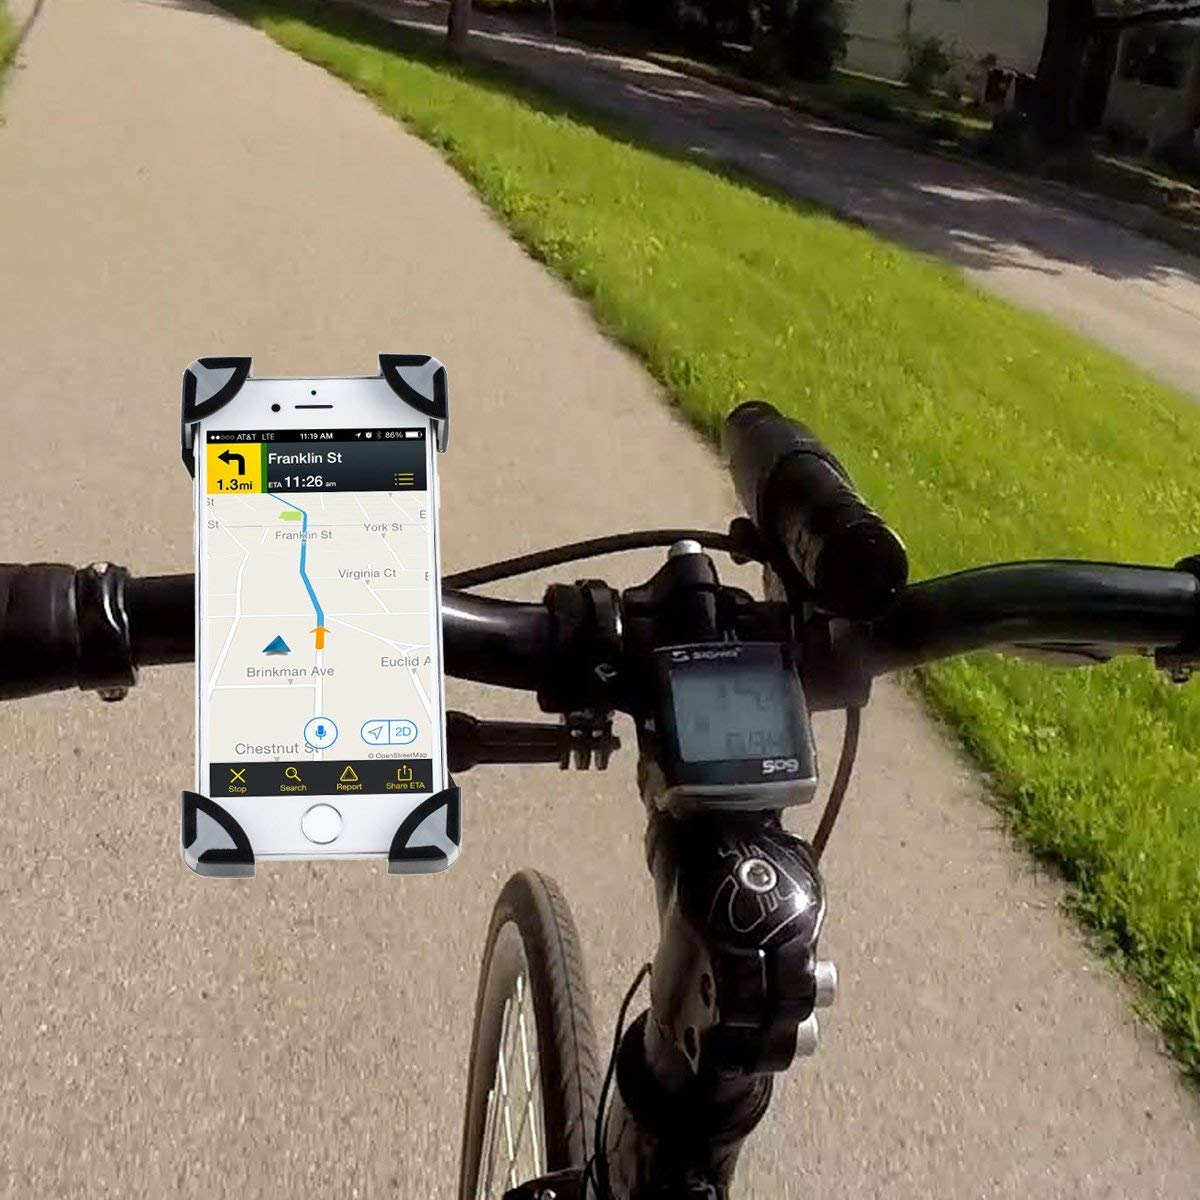 AGPTEK Bike Phone Mount Bicycle Holder, 360 Degrees Rotatable, Adjustable Eagle Claw Design, Universal Cradle Clamp for iPhone 7 8 X, iPhone 7 8 XS Plus, Samsung S7 8 Note 5, GPS etc